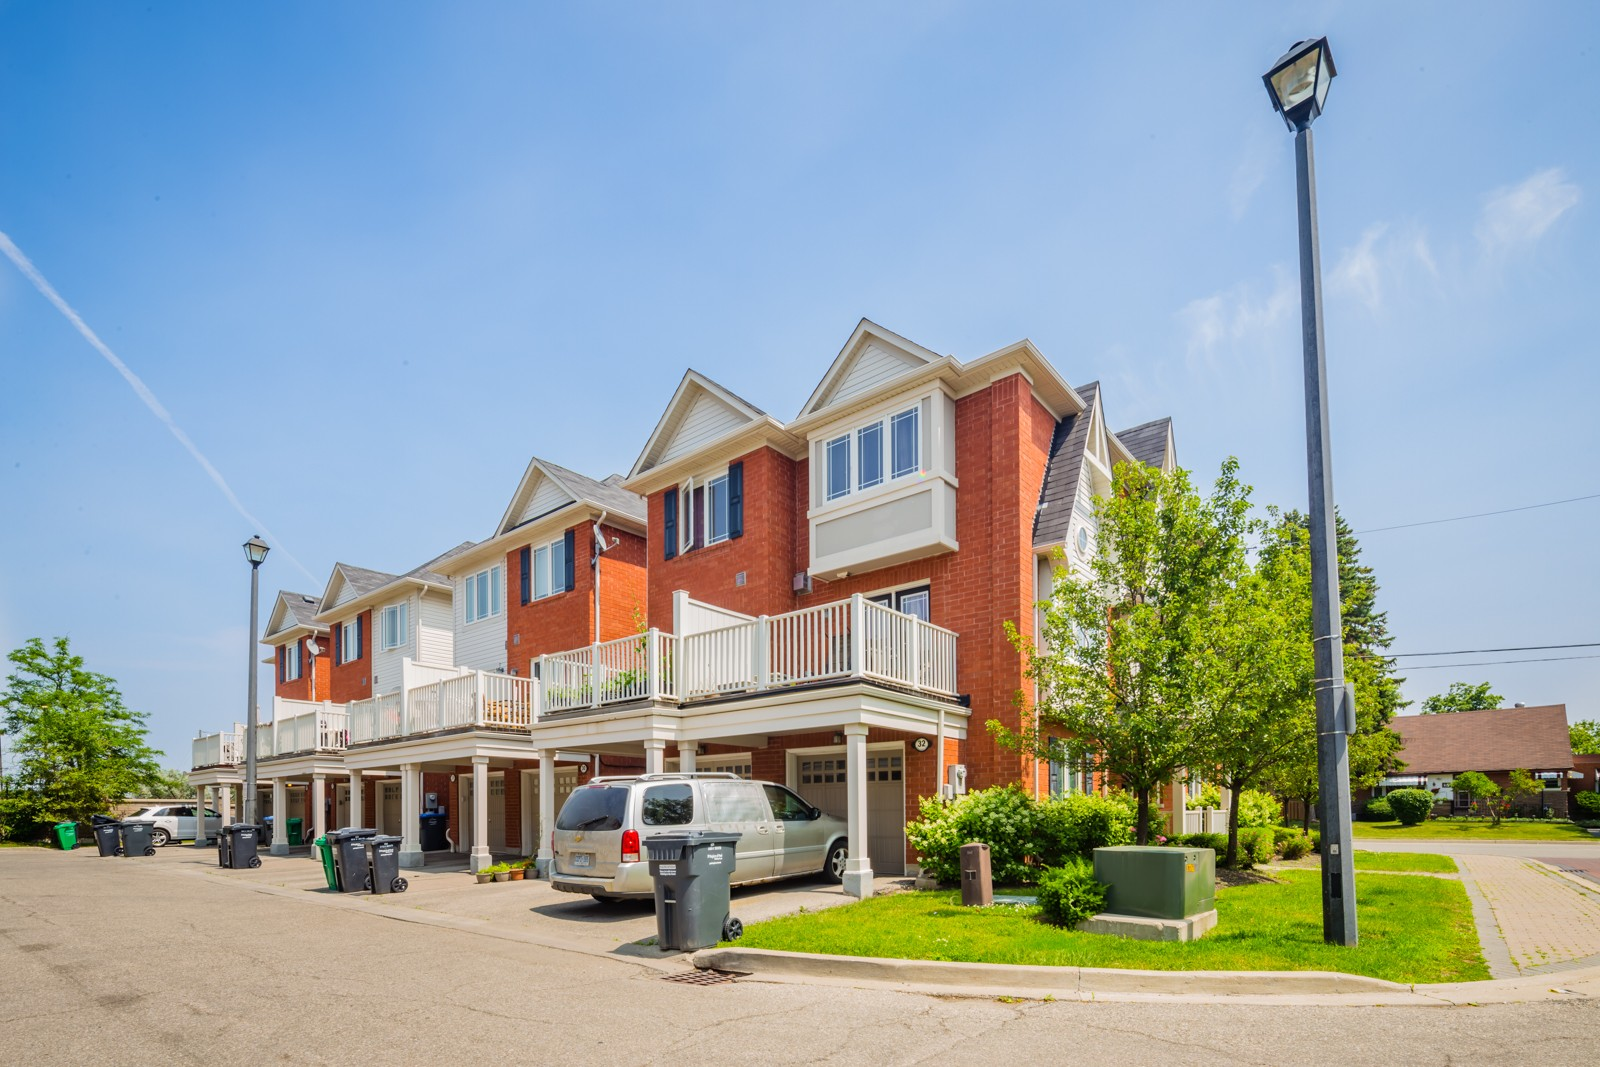 50 Hillcrest Ave Townhouses at 50 Hillcrest Ave, Brampton 0